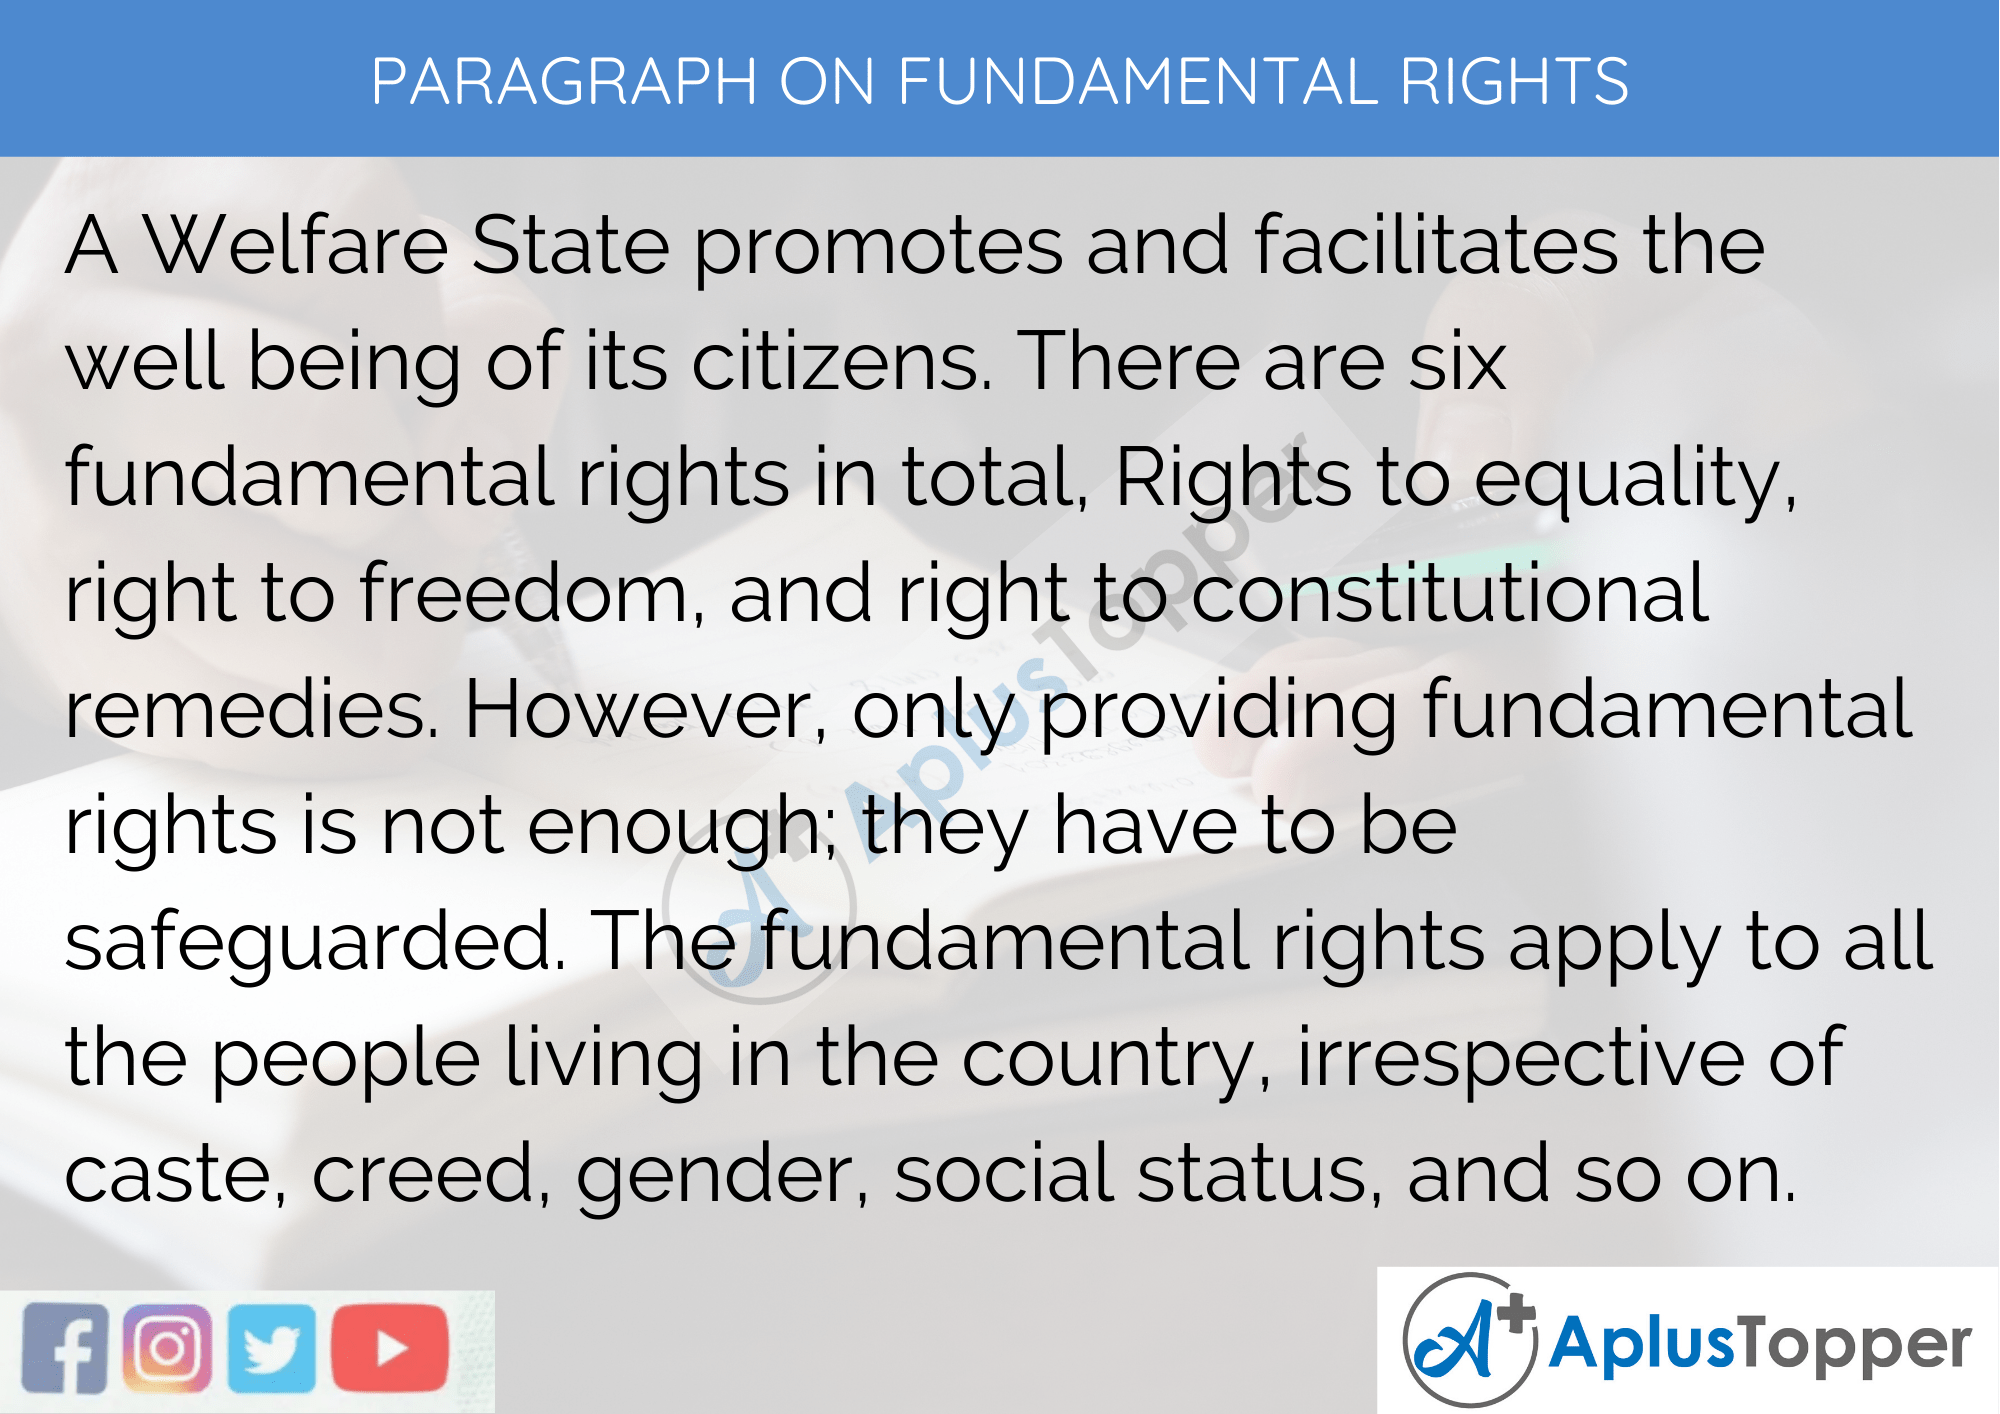 Paragraph On Fundamental Rights - 100 Words for Classes 1, 2, 3 Kids